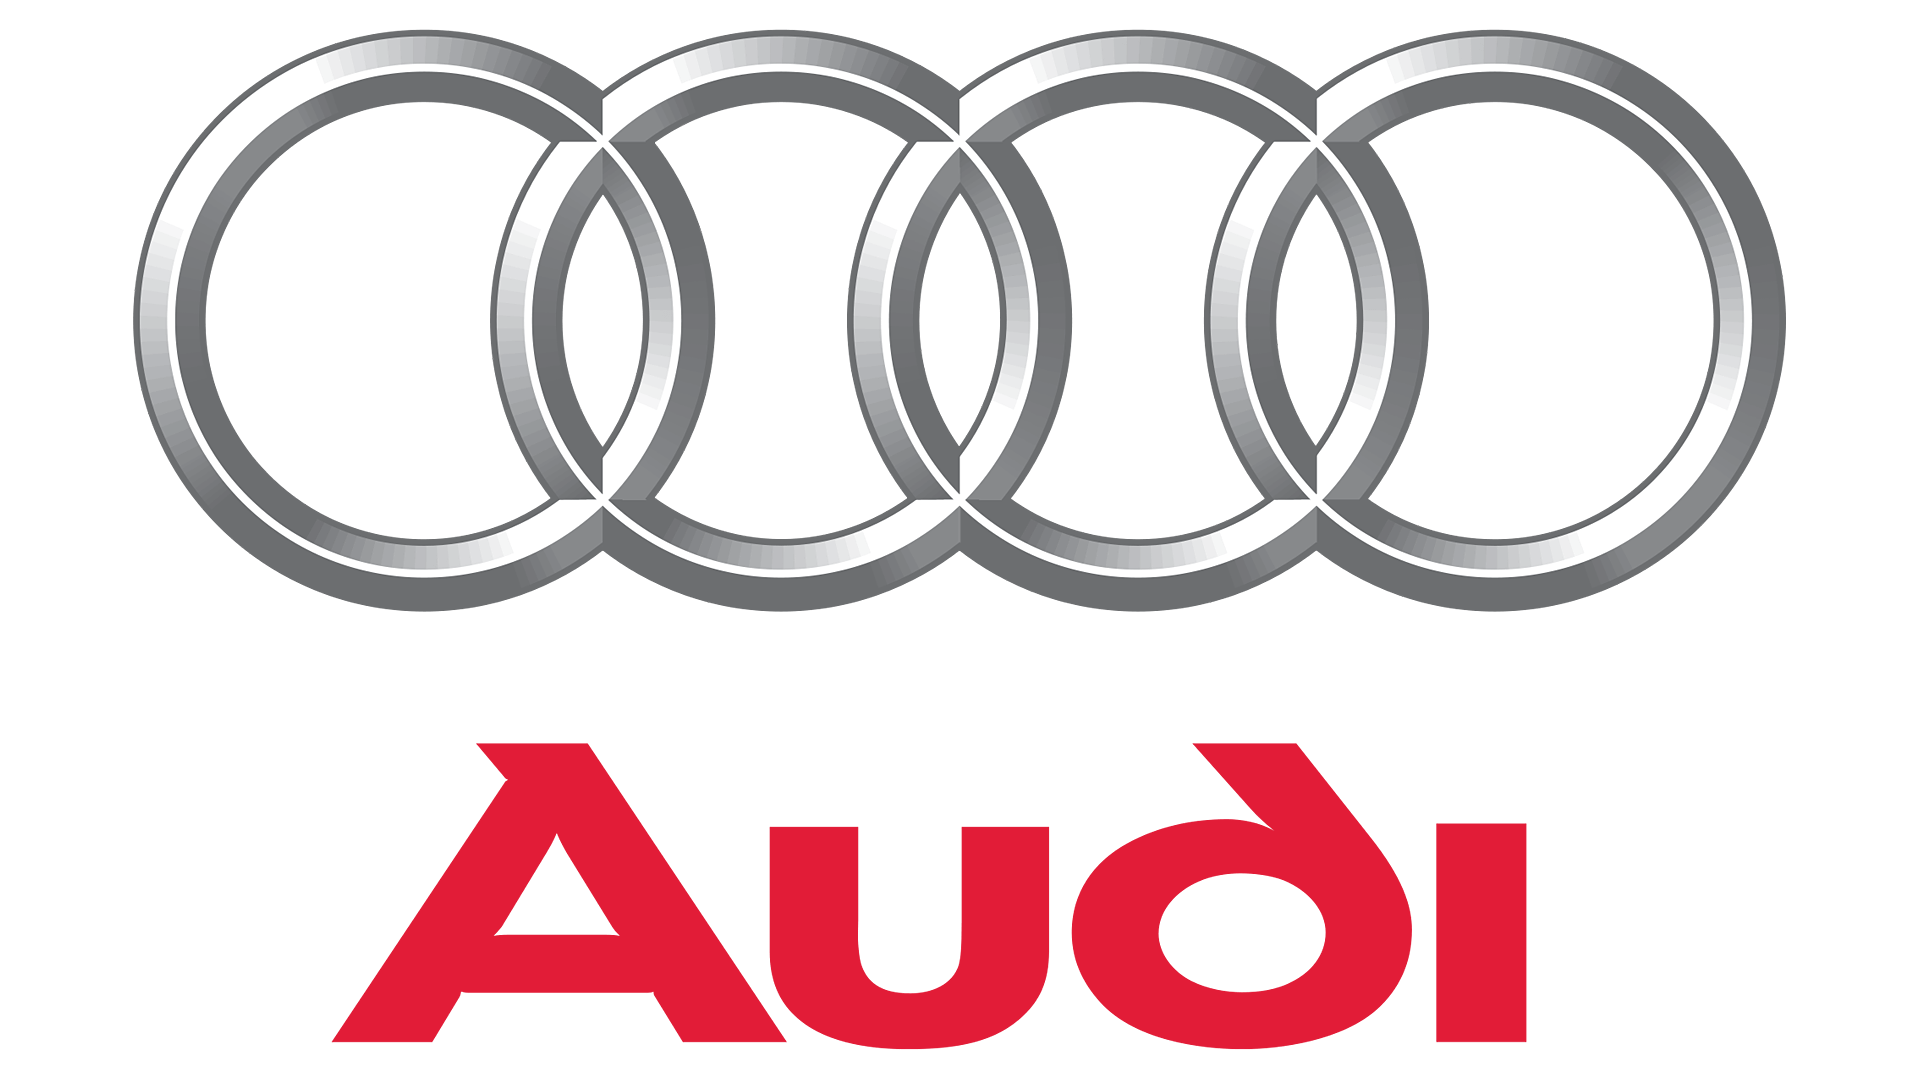 Audi Logo Hd Png Meaning Information